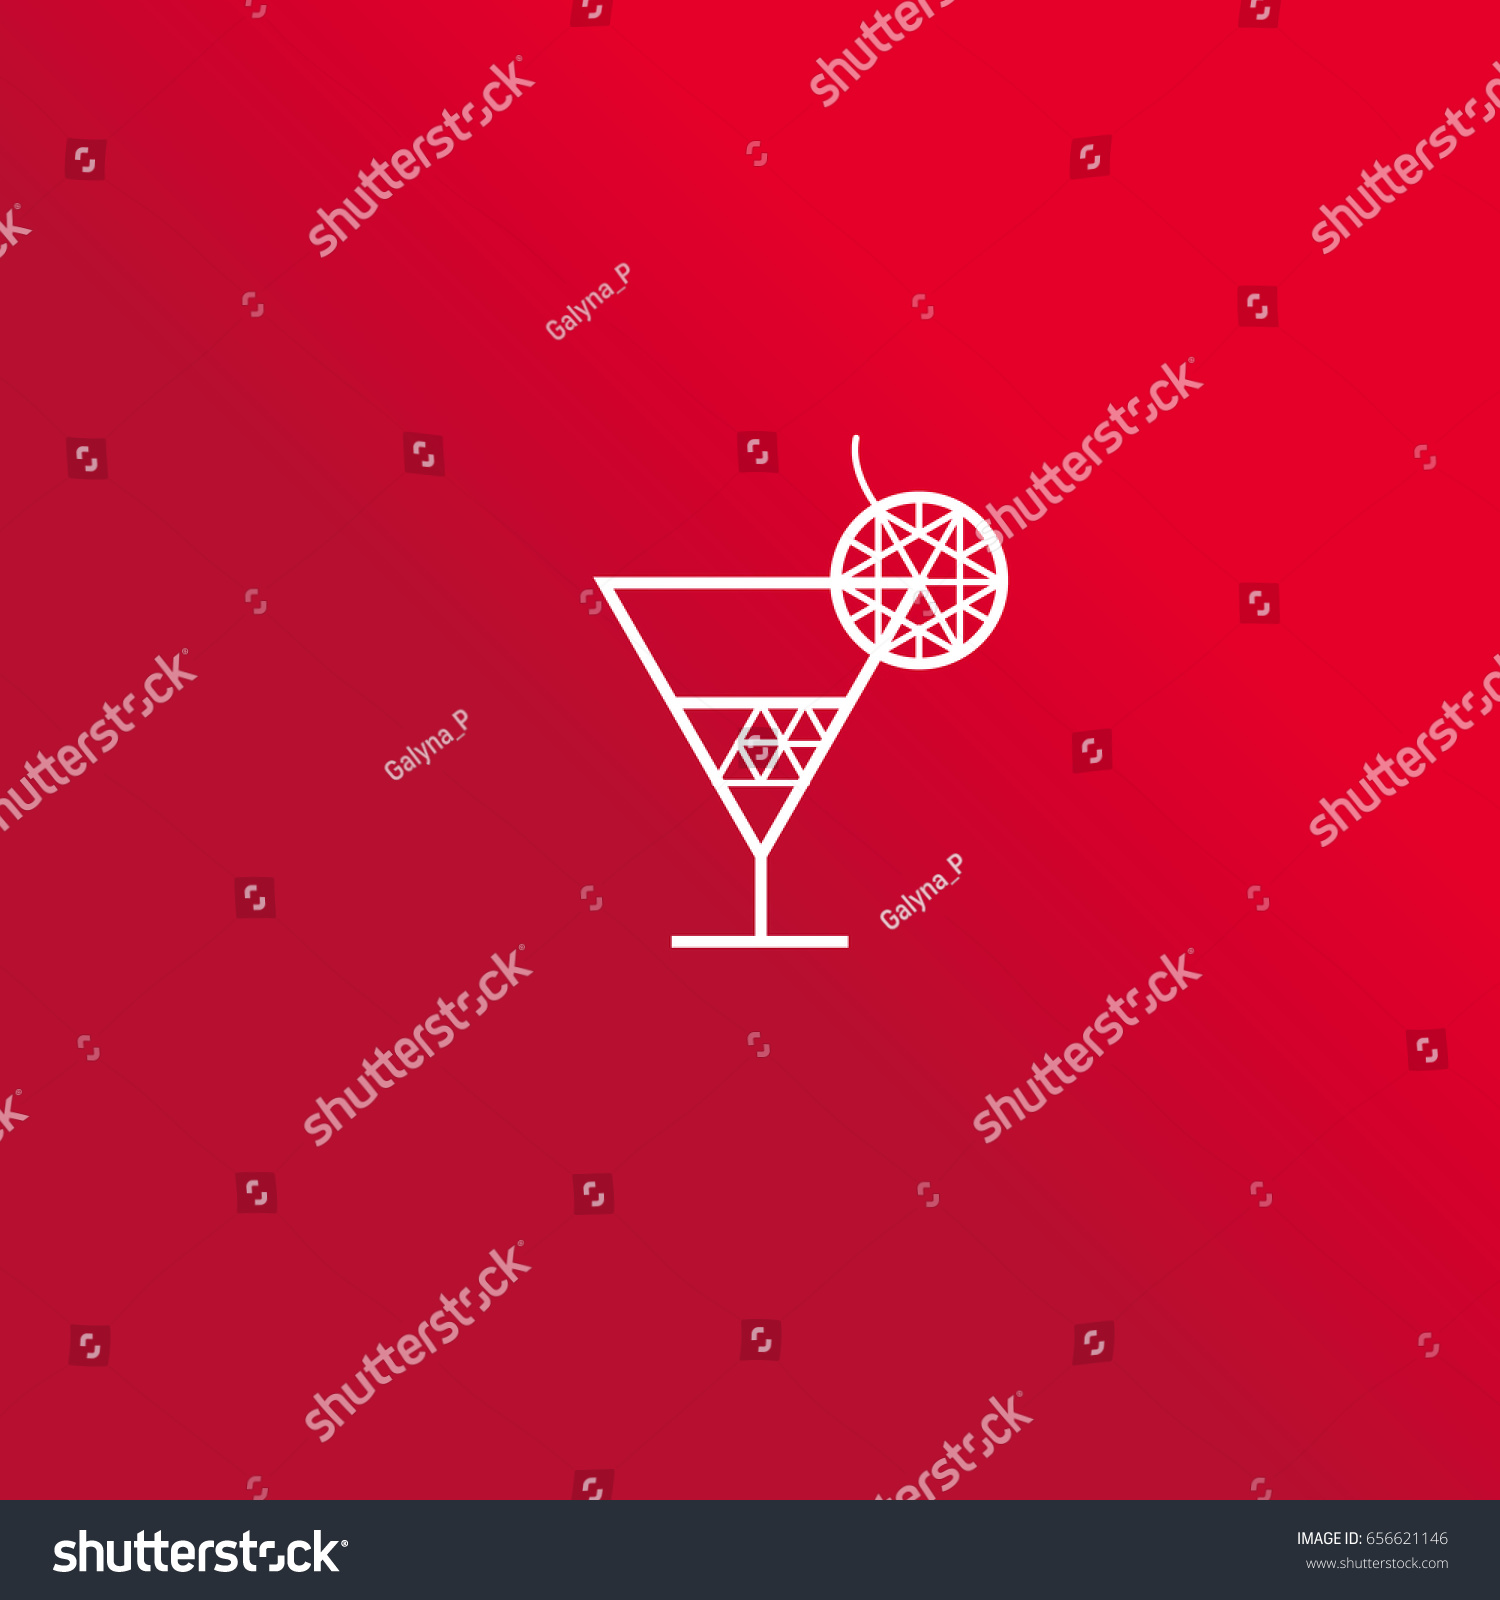 Geometry diamond design element cocktail shape stock vector geometry diamond design element in cocktail shape for concept bar logo icon symbol biocorpaavc